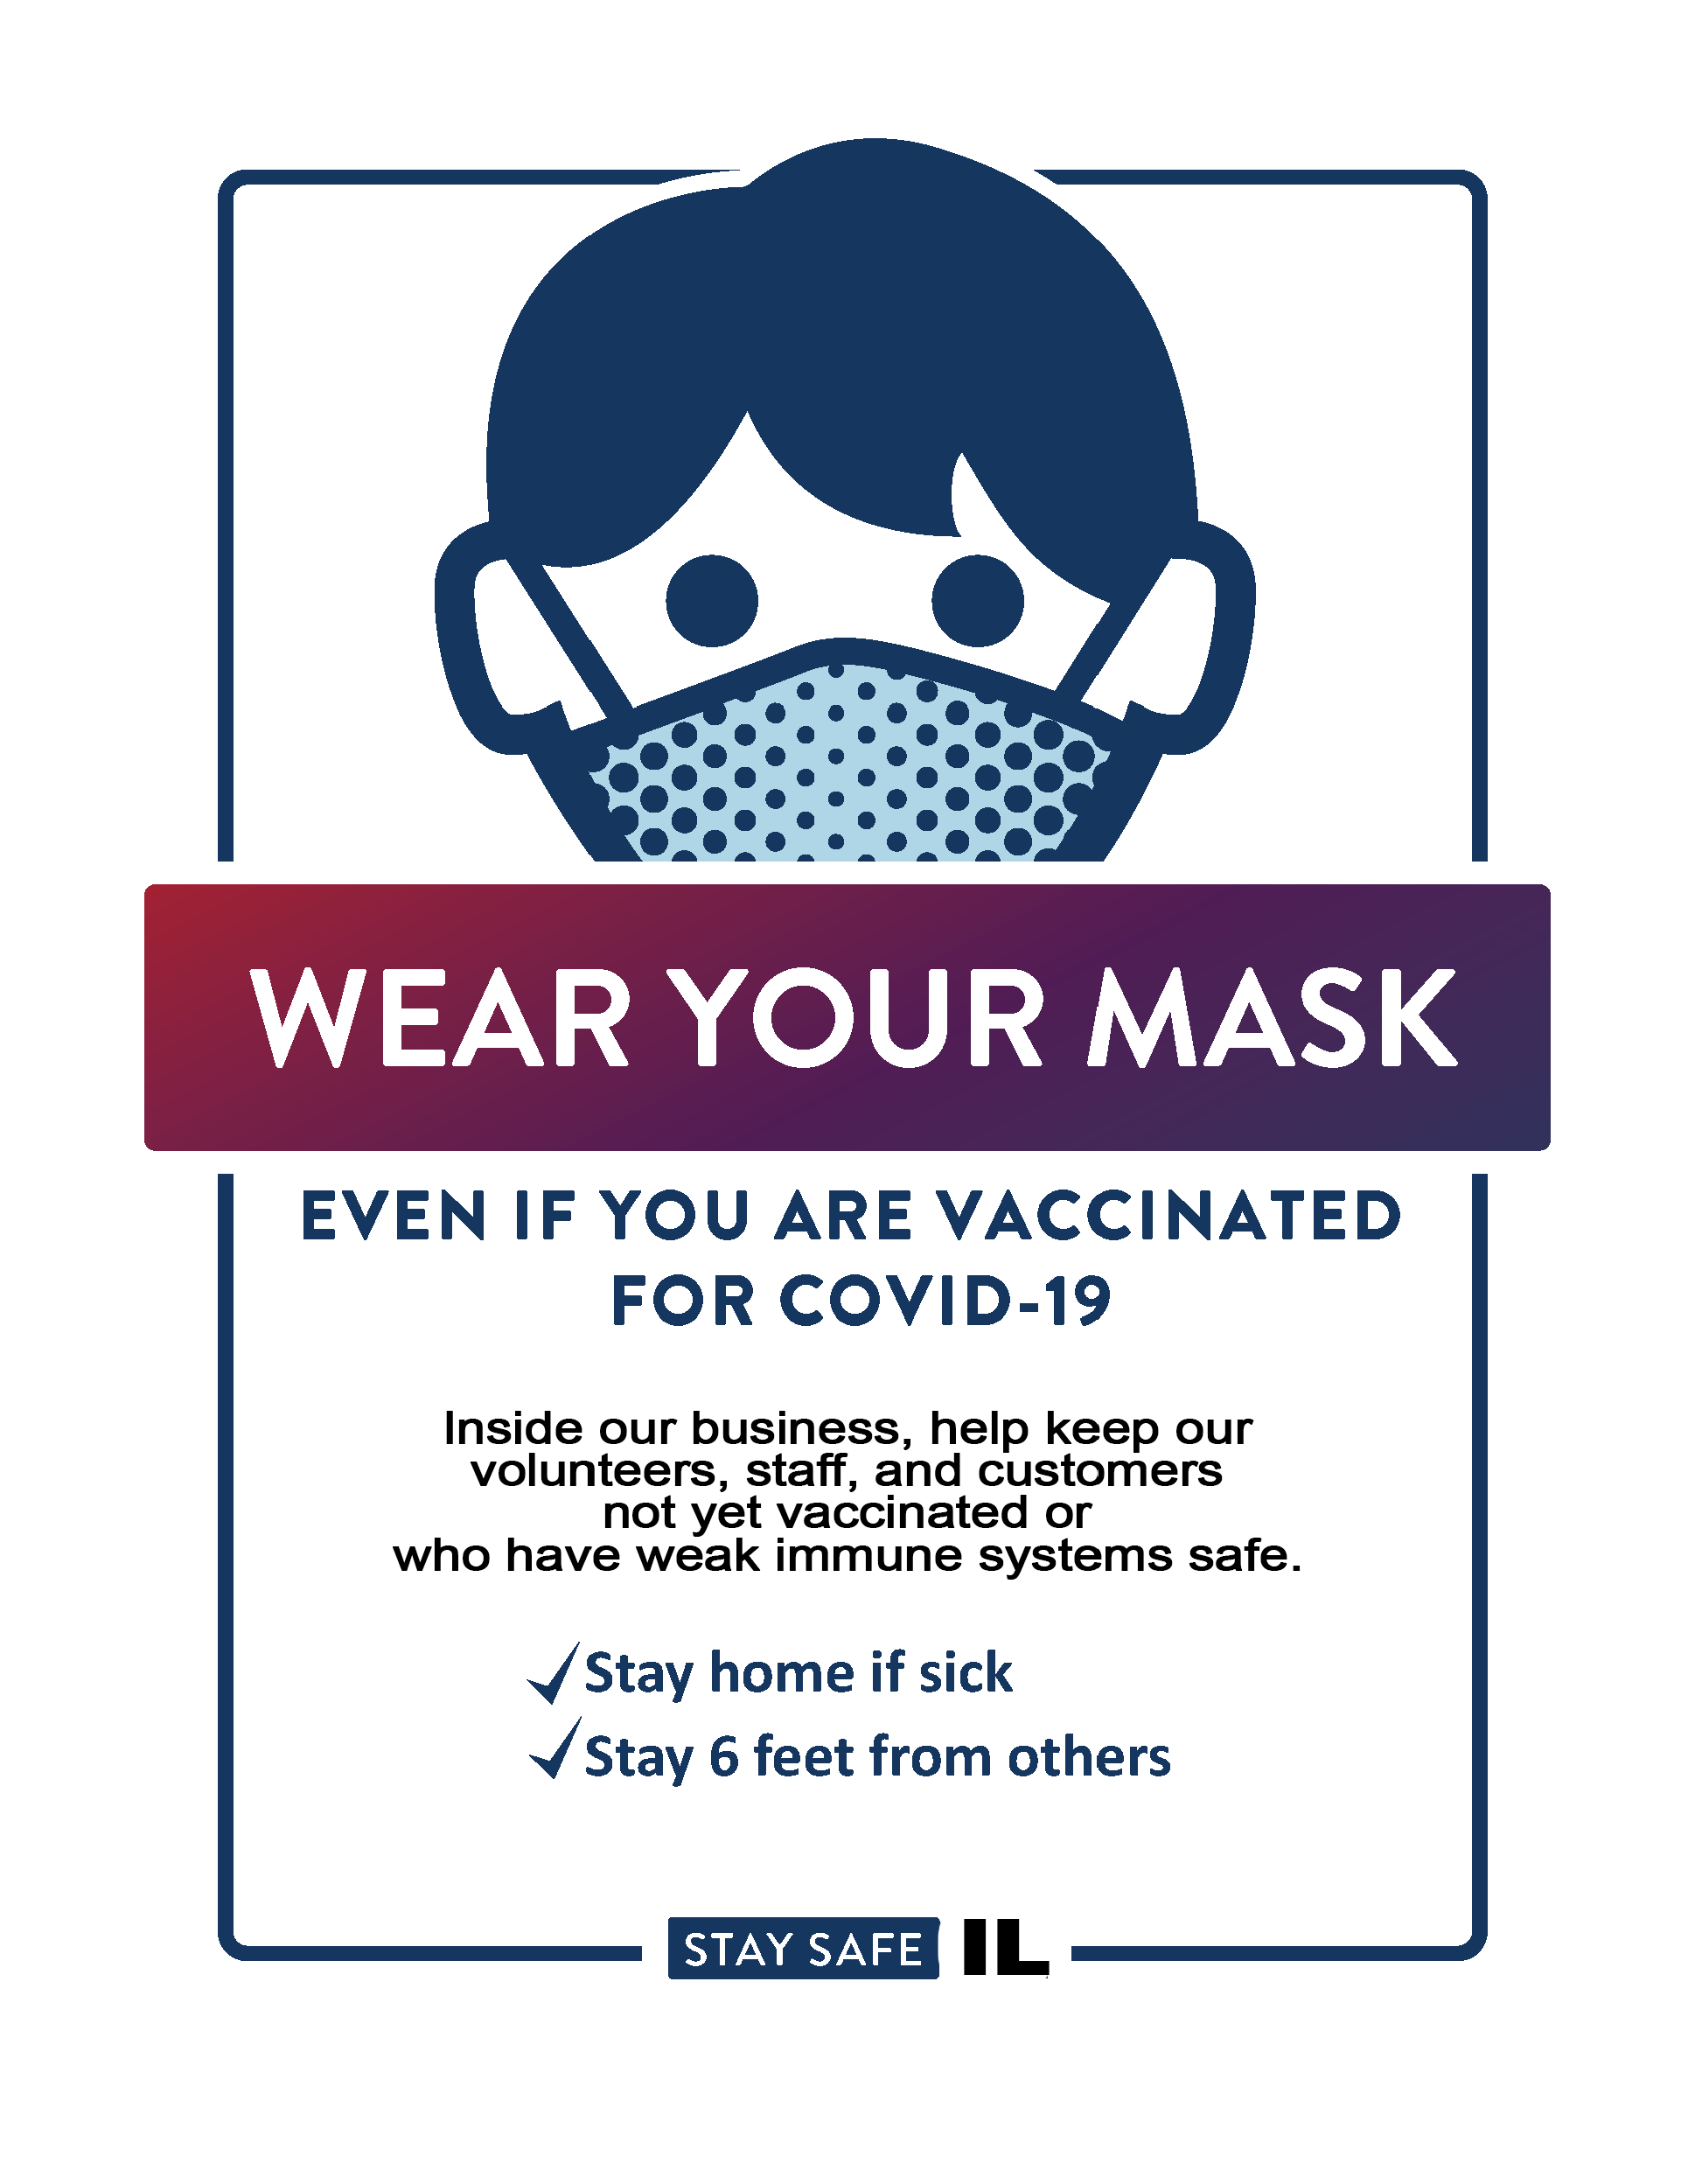 masks_required_after_vax business[13784]